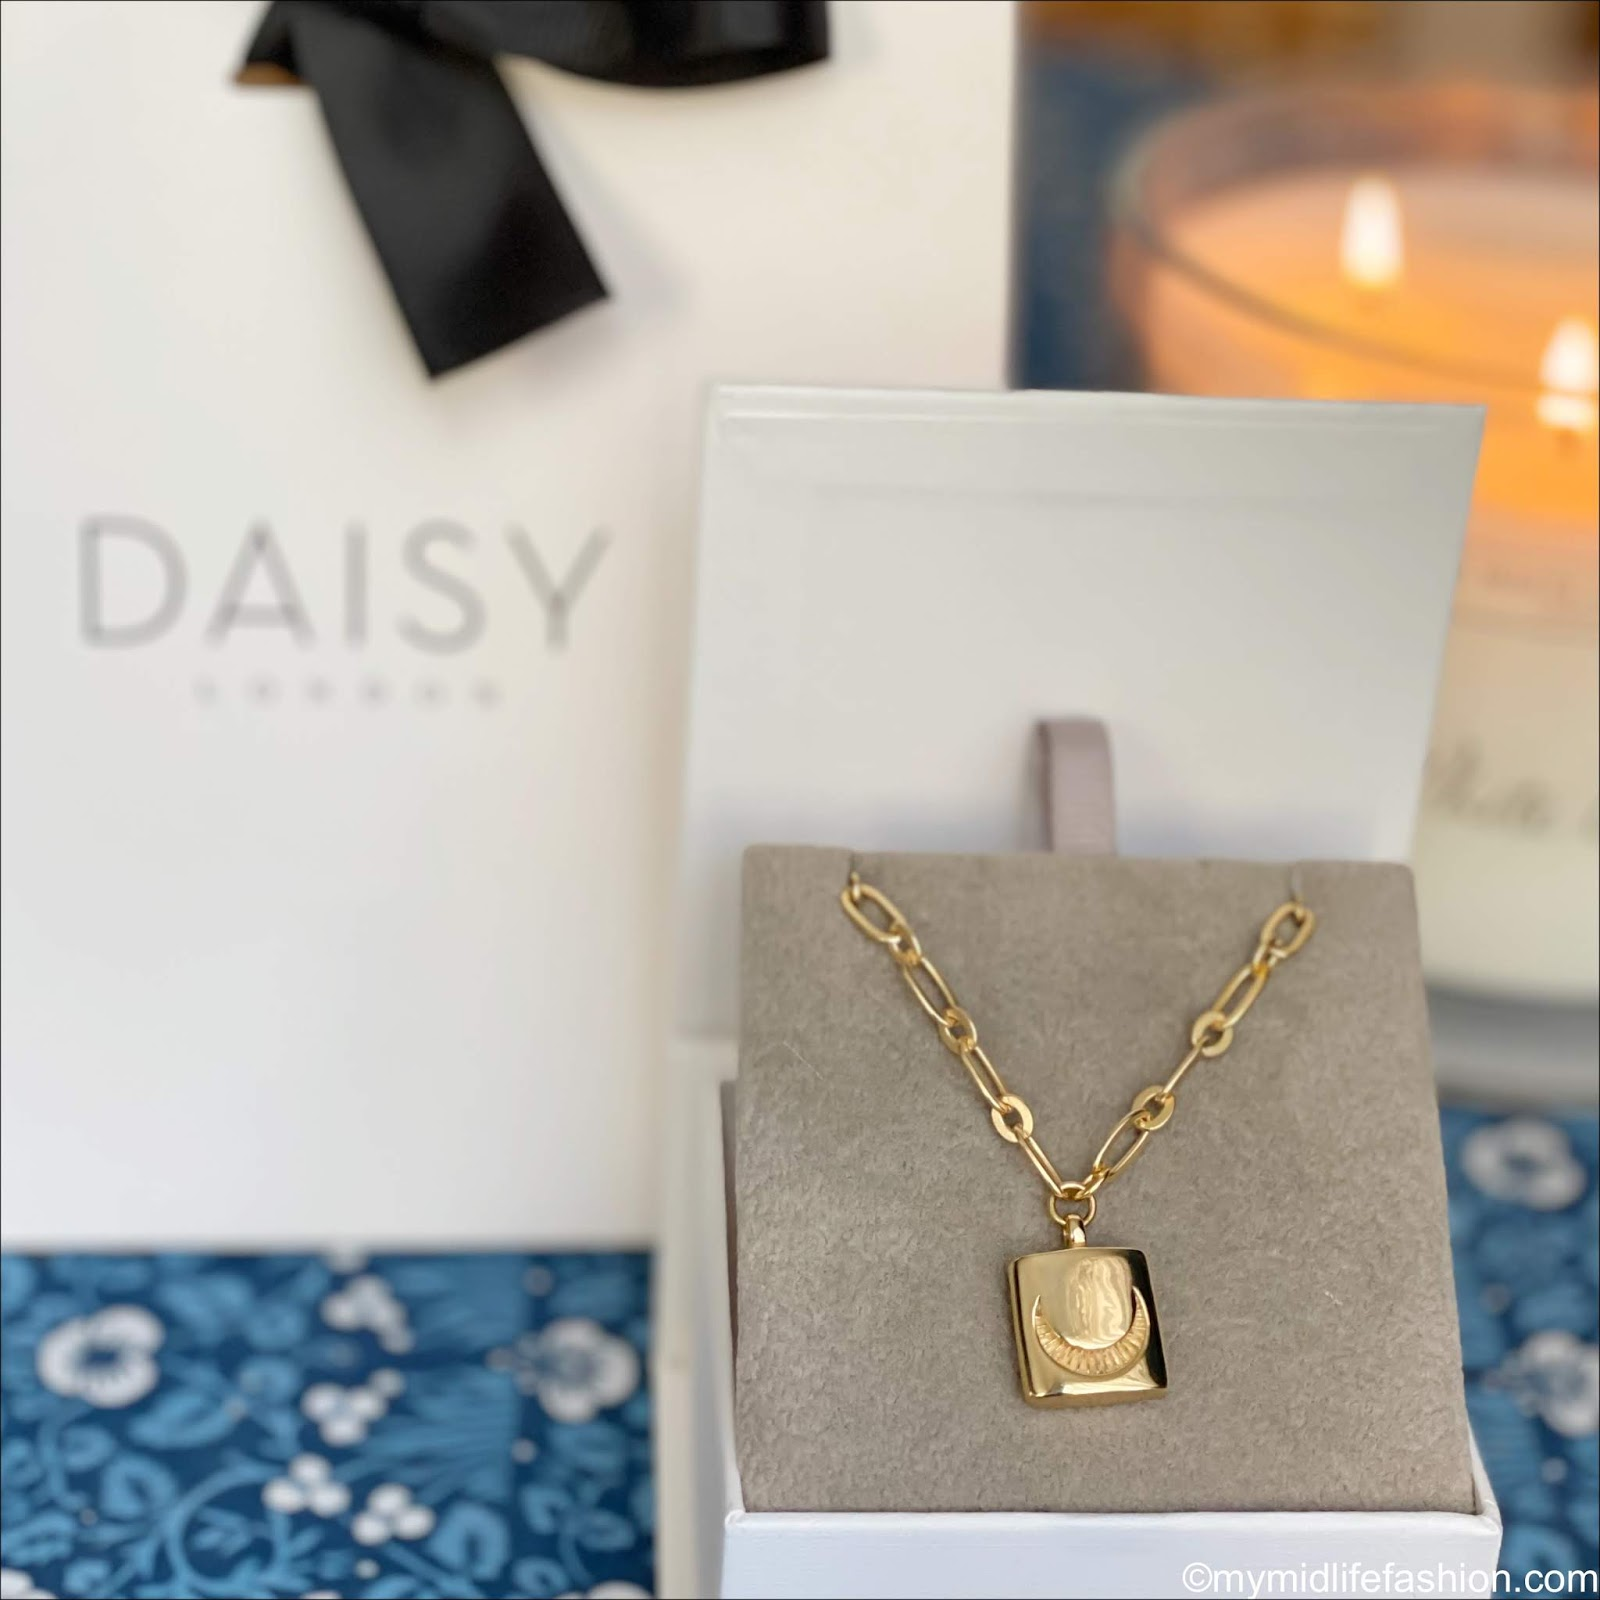 my midlife fashion, daisy London ester Lalonde luna lock necklace